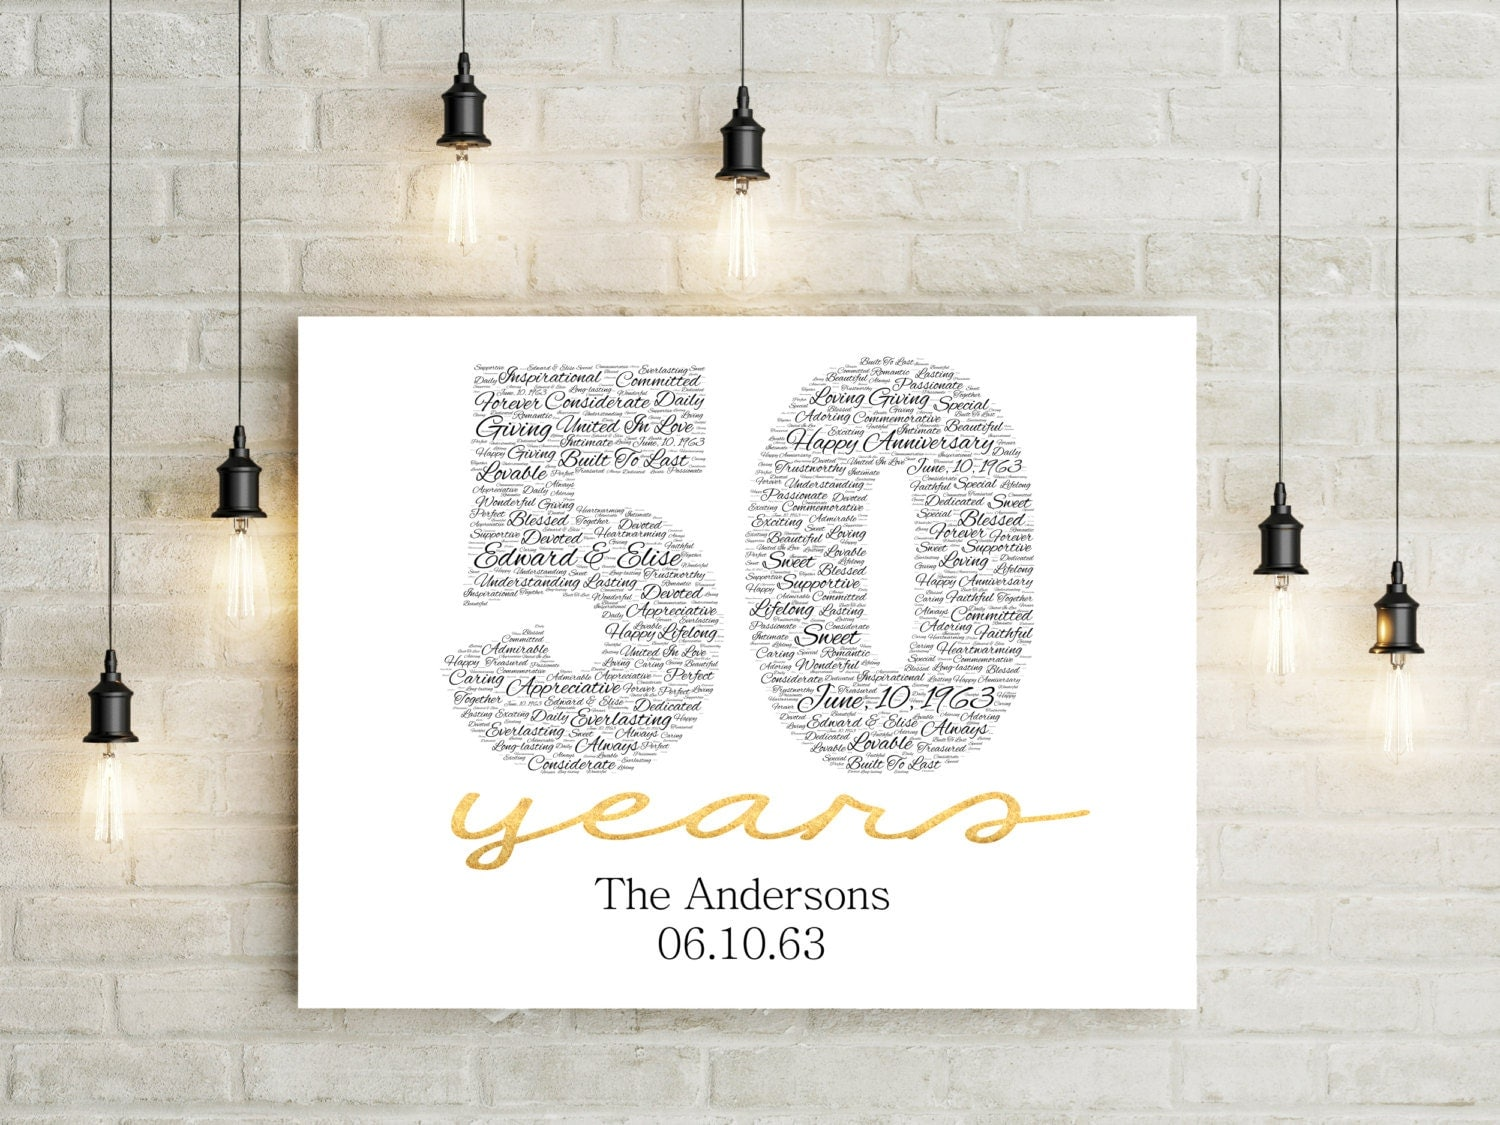 50th Anniversary Wedding Gift Ideas: 50th Anniversary Gift CANVAS Golden Wedding Anniversary Gift